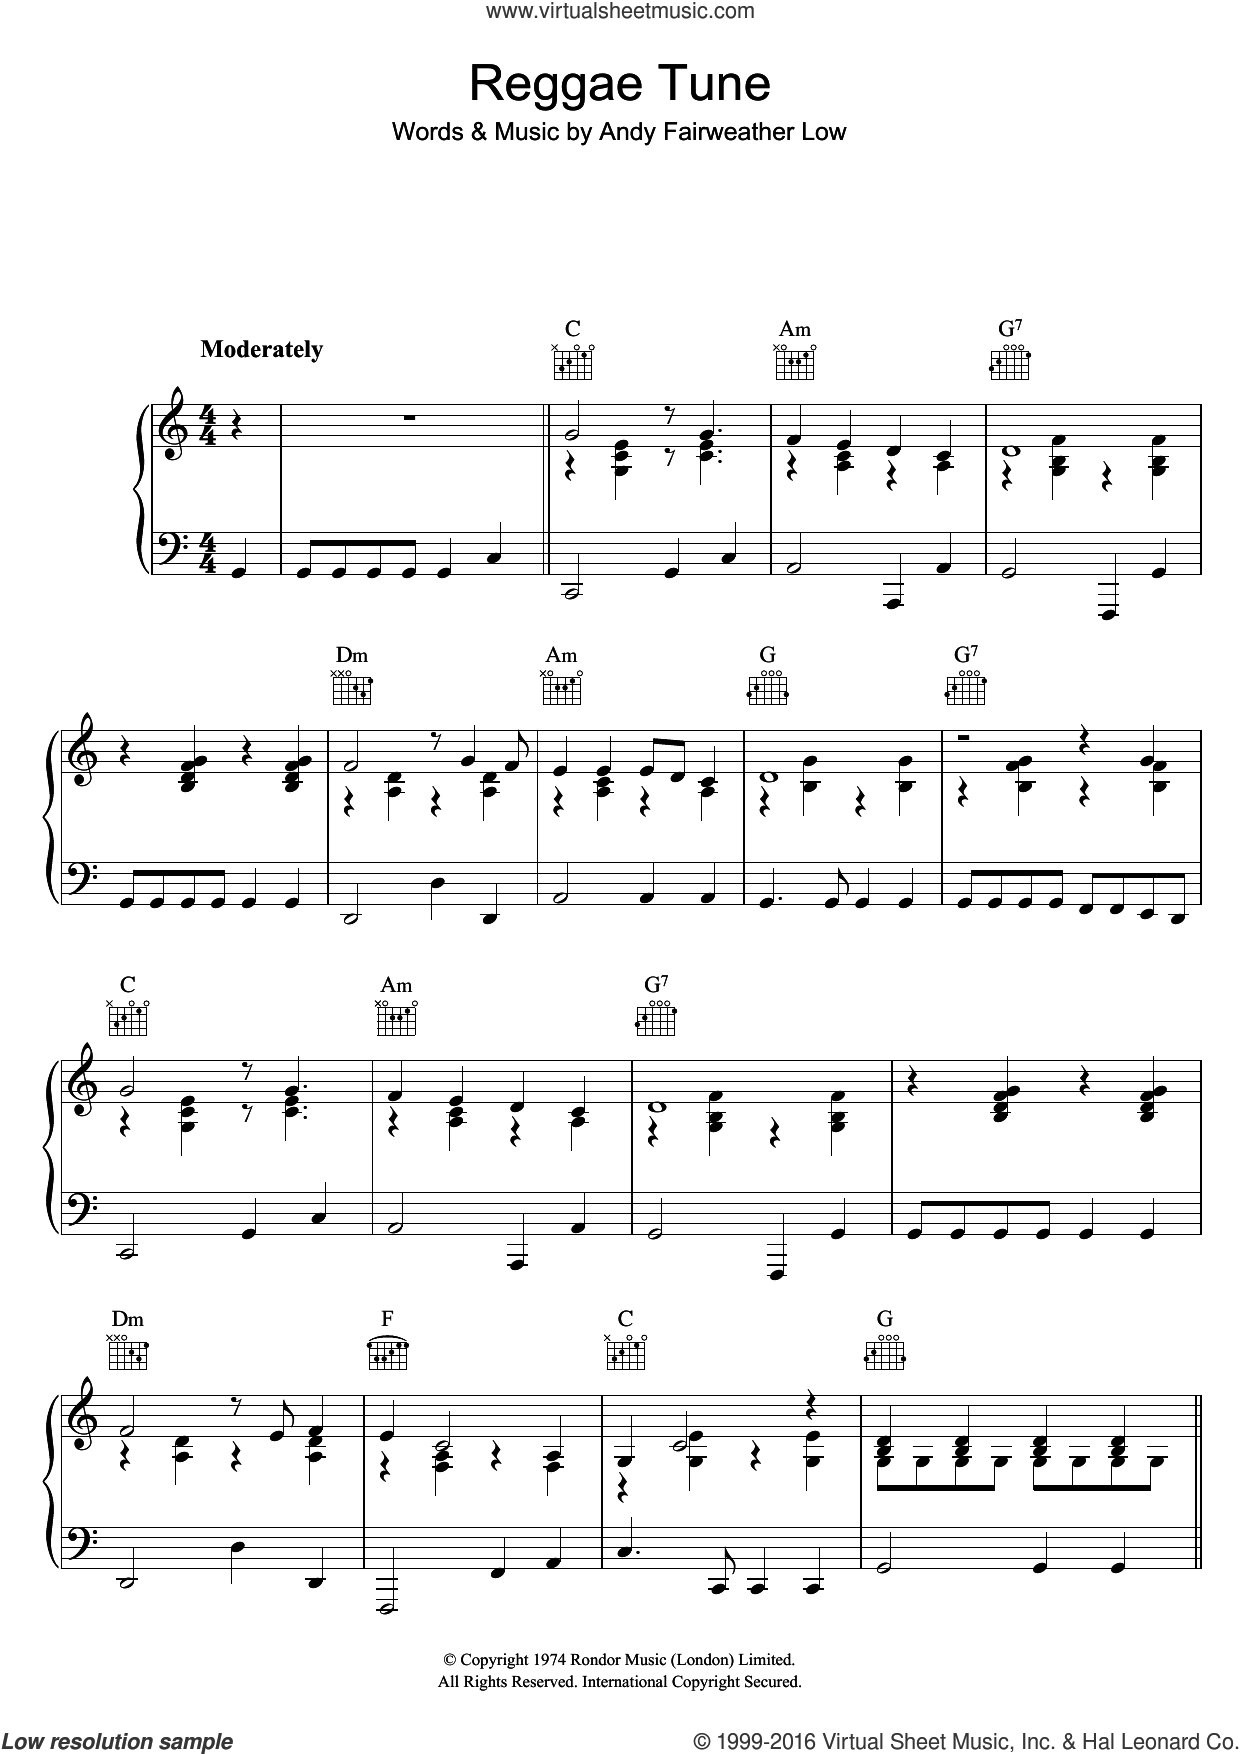 Reggae Tune sheet music for voice, piano or guitar by Andy Fairweather Low, intermediate skill level